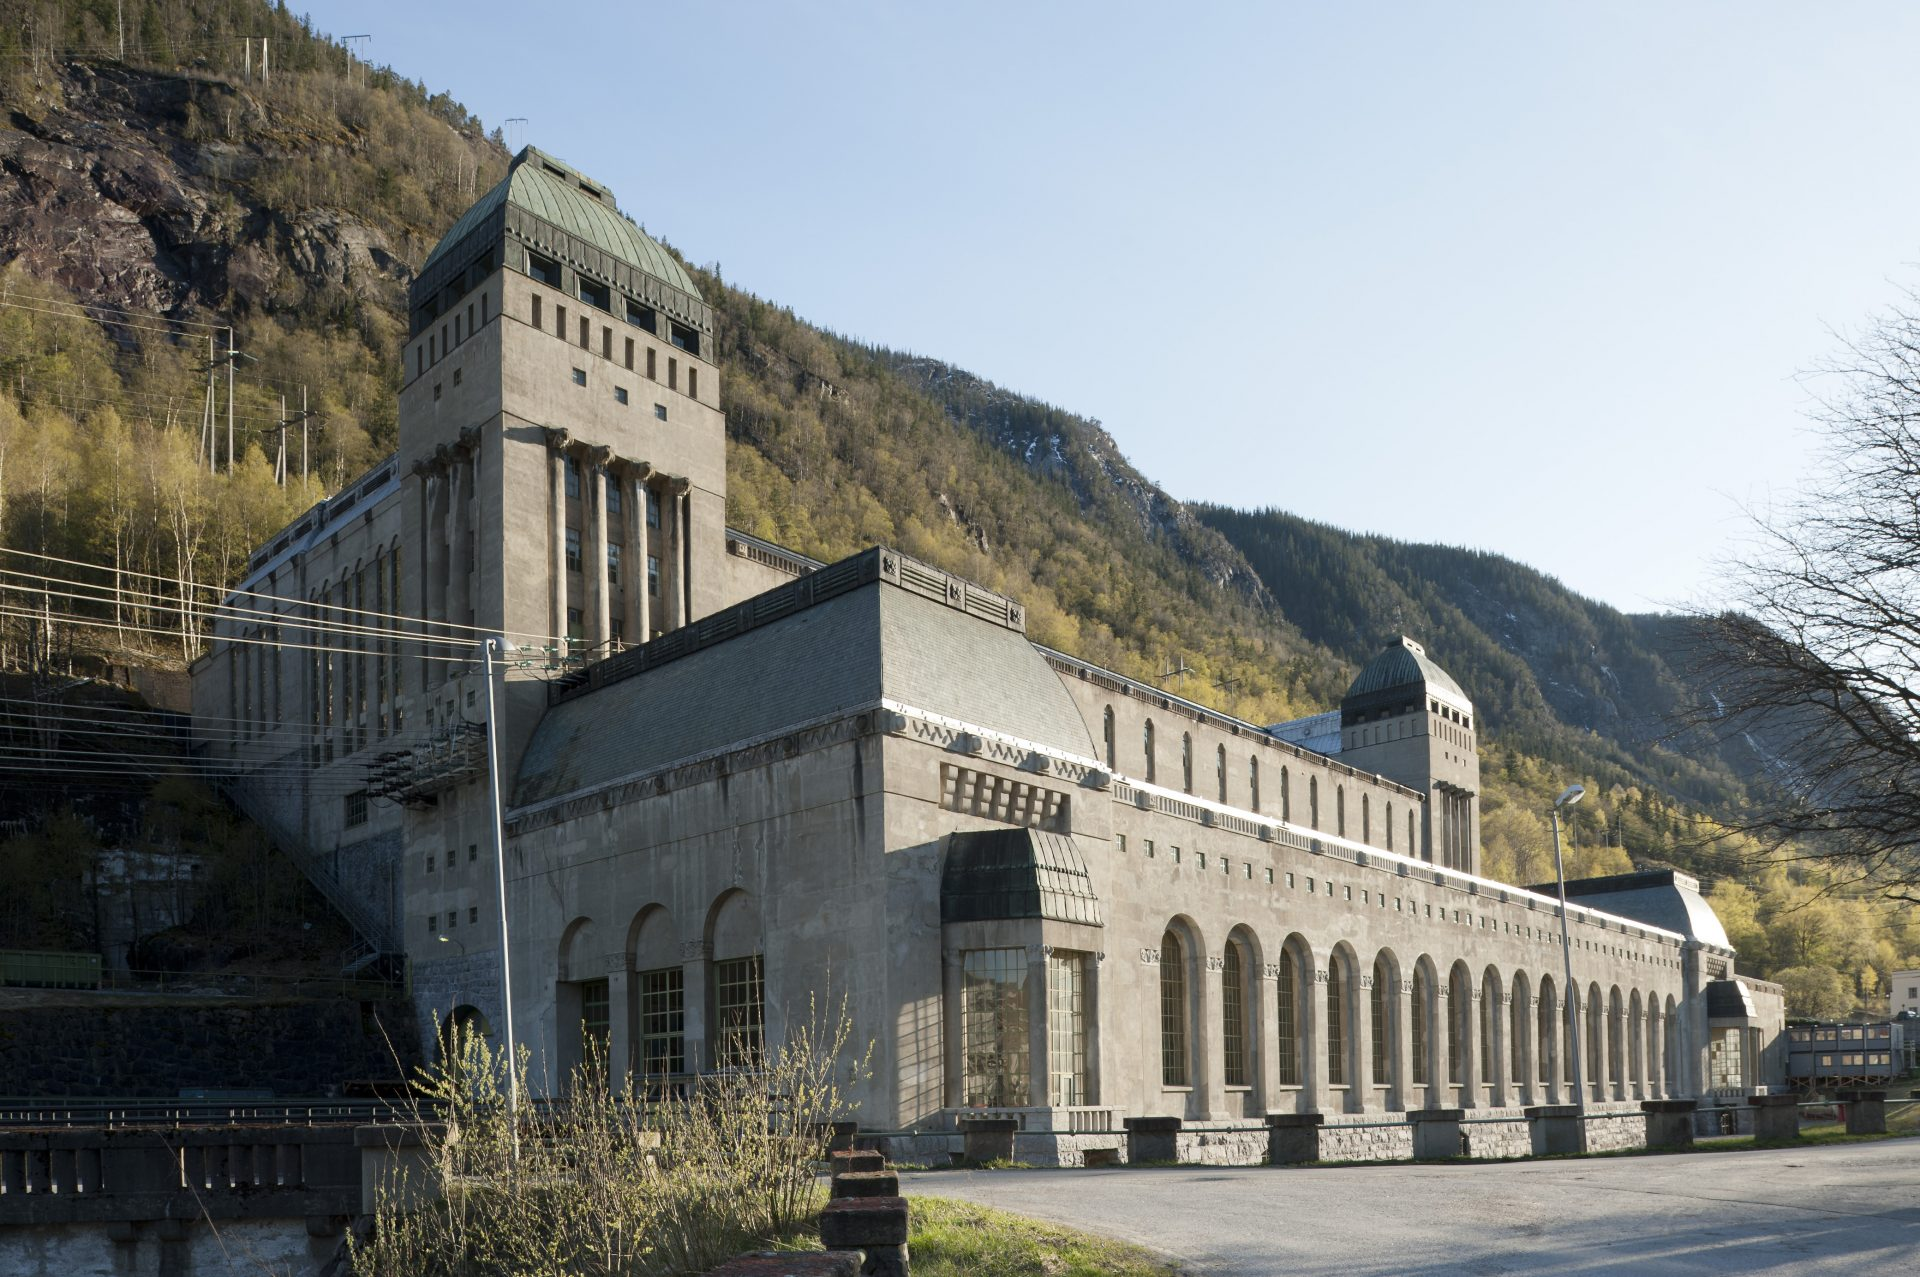 Såheim power station in Rjukan was accorded listed status in 2003. Såheim is part of the Rjukan-Notodden Industrial Heritage Site and thus included on the UNESCO World Heritage List. Built in 1914 based on plans by architect Thorvald Astrup and Professor Olaf Nordhagen. Photo: Per Berntsen